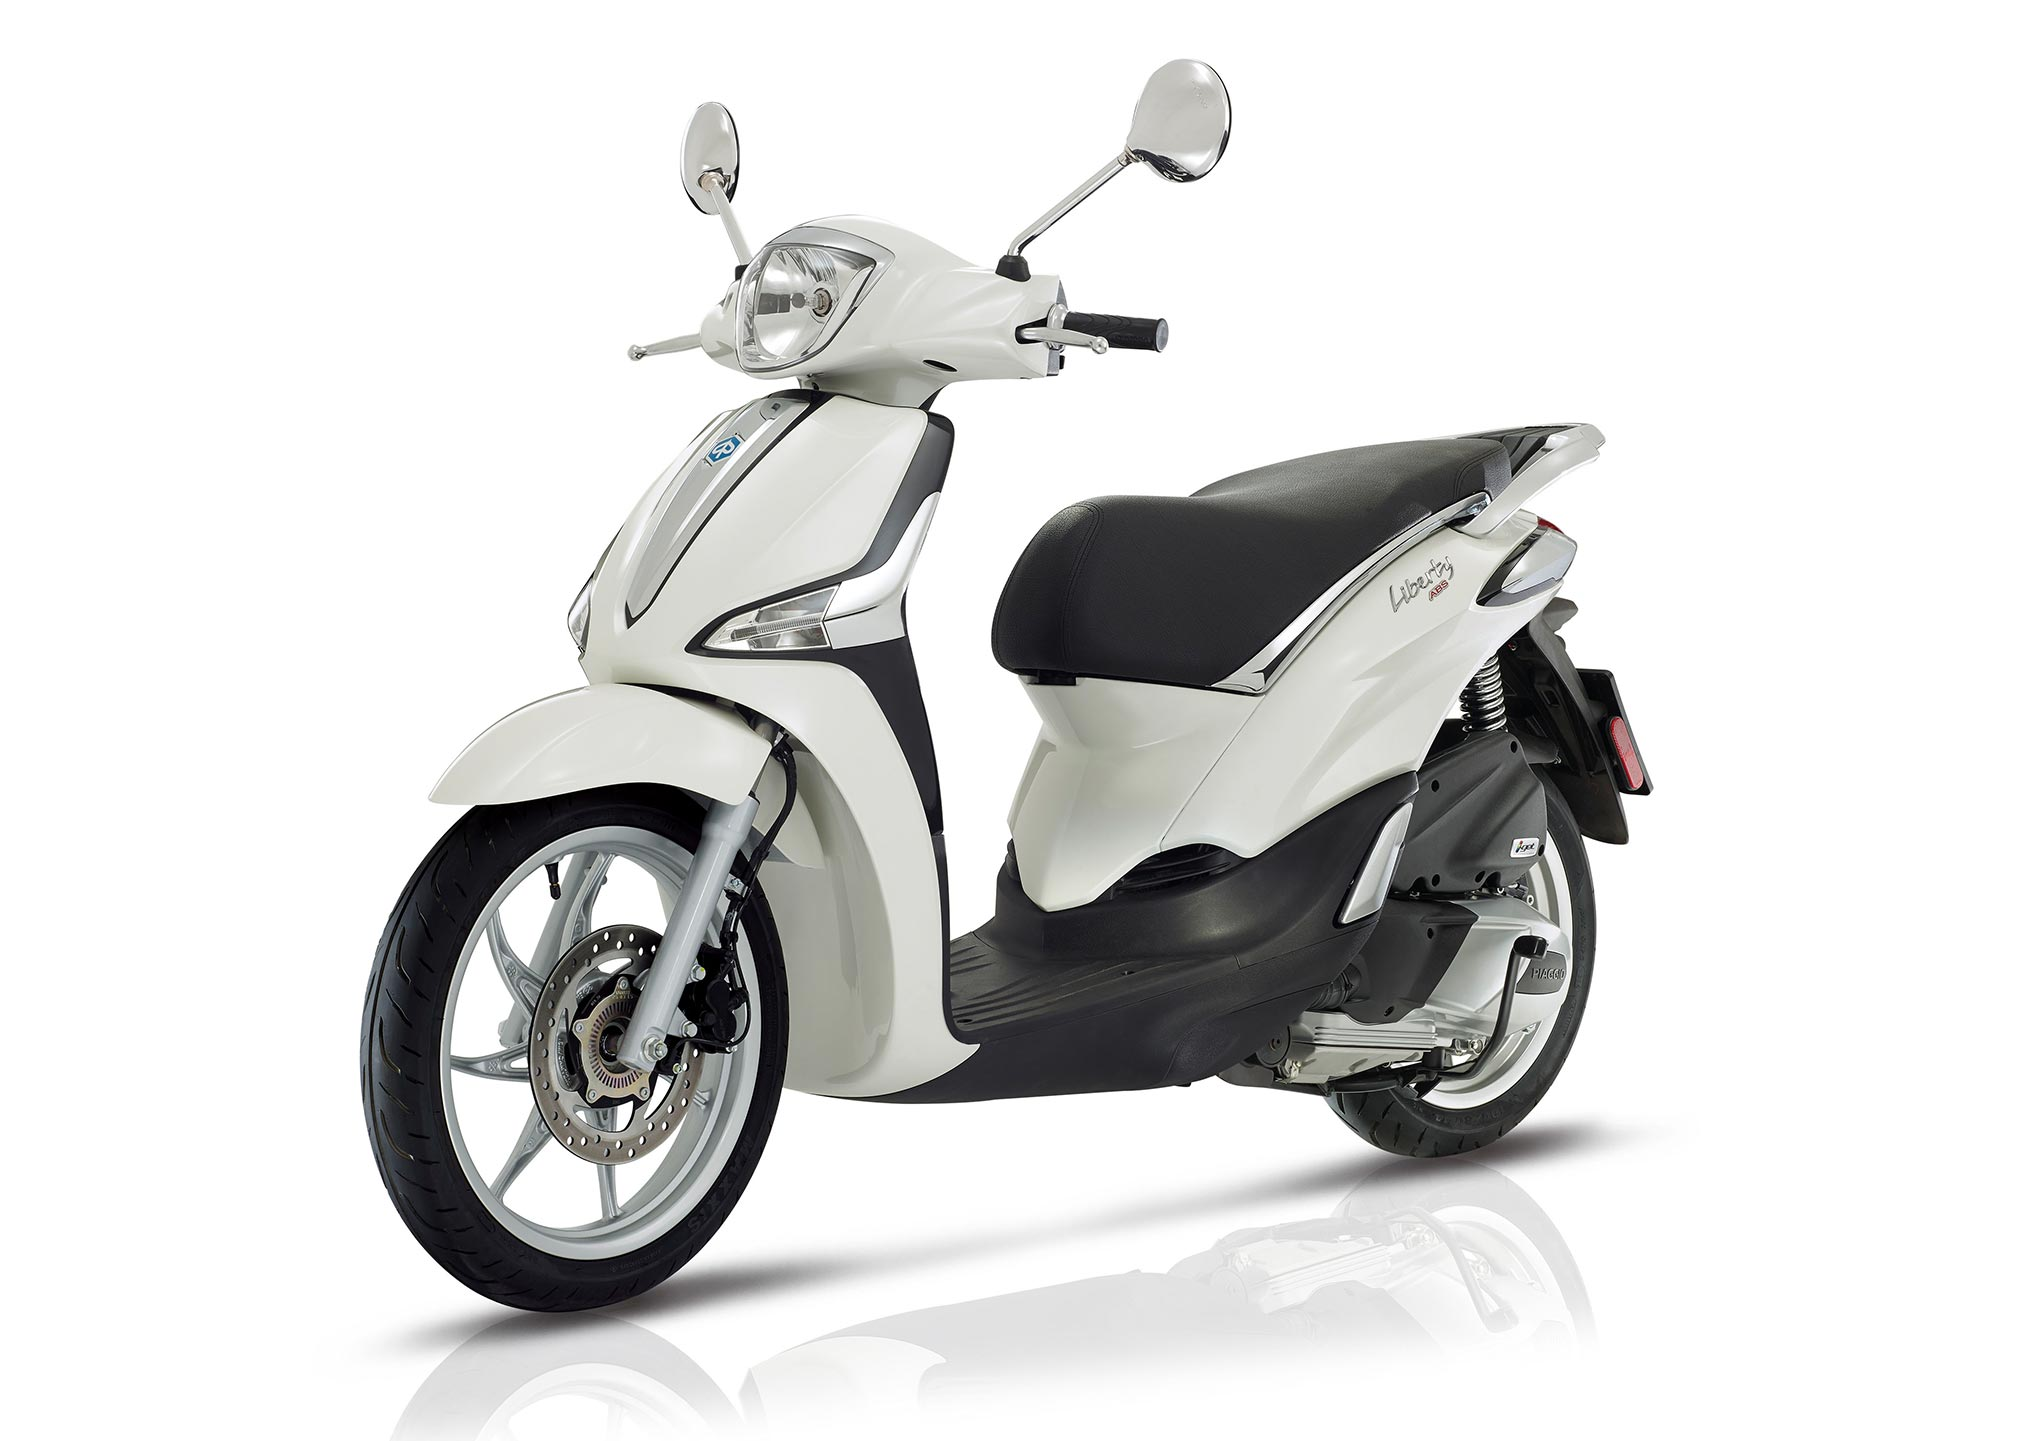 2017 piaggio liberty 150 abs iget review. Black Bedroom Furniture Sets. Home Design Ideas